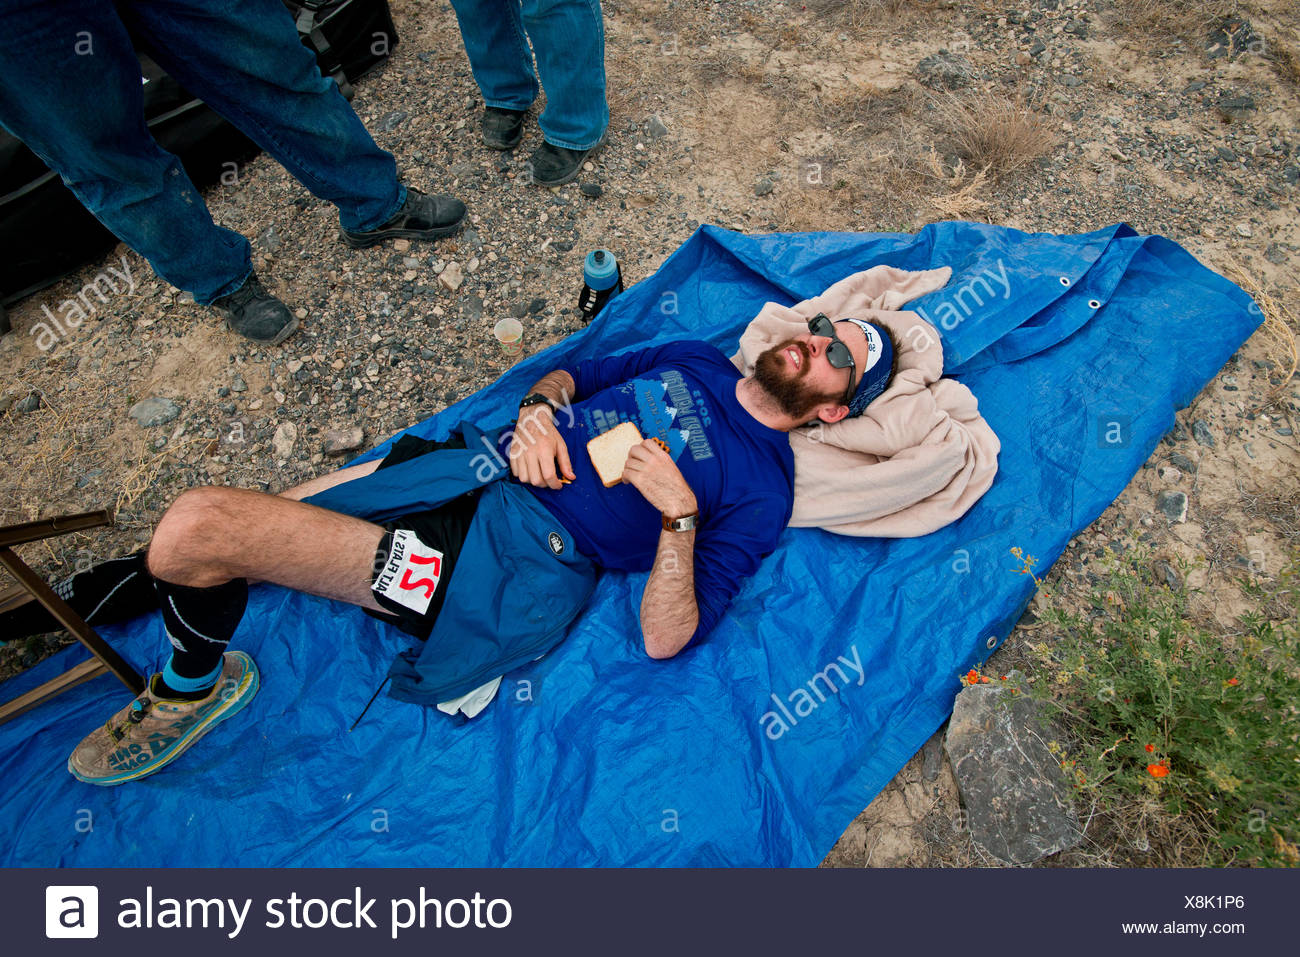 A competitor lays exhausted on a tarp during the Salt Flats 100 in Bonneville, Utah. - Stock Image